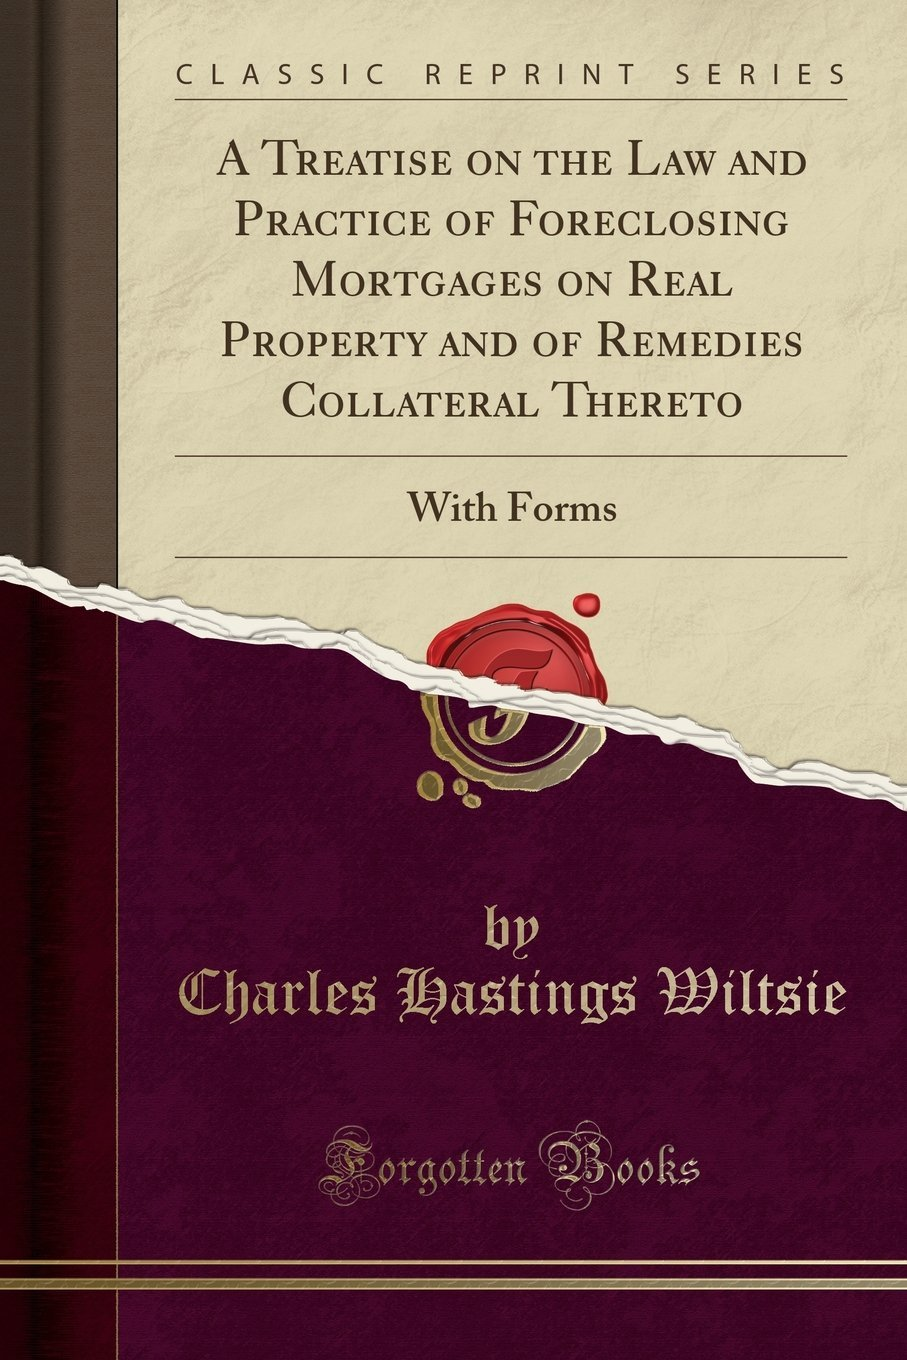 A Treatise on the Law and Practice of Foreclosing Mortgages on Real Property and of Remedies Collateral Thereto: With Forms (Classic Reprint) PDF